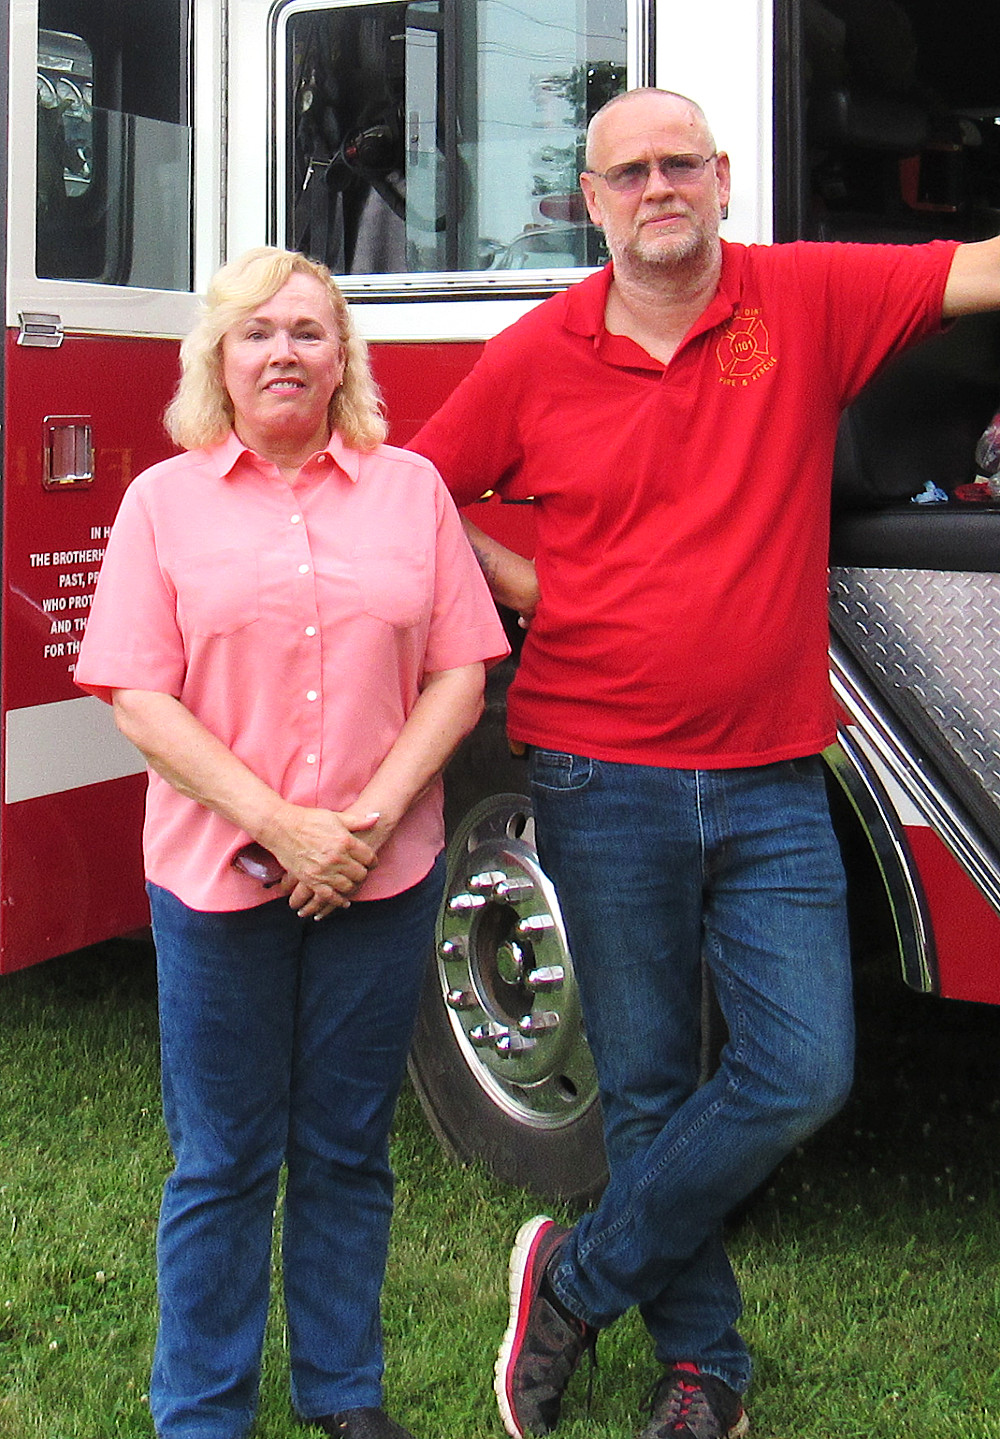 Kathleen Hensley poses with Eleven Point Fire Chief Frank Vanhorn. Hensley is a candidate for Northern Commissioner, and her focus is roads. At the Hutton Valley Pie Social, she spoke of her intention of representing northern Howell County in West Plains and said she is a public servant, not a politician. (photo credit: Amanda Mendez)